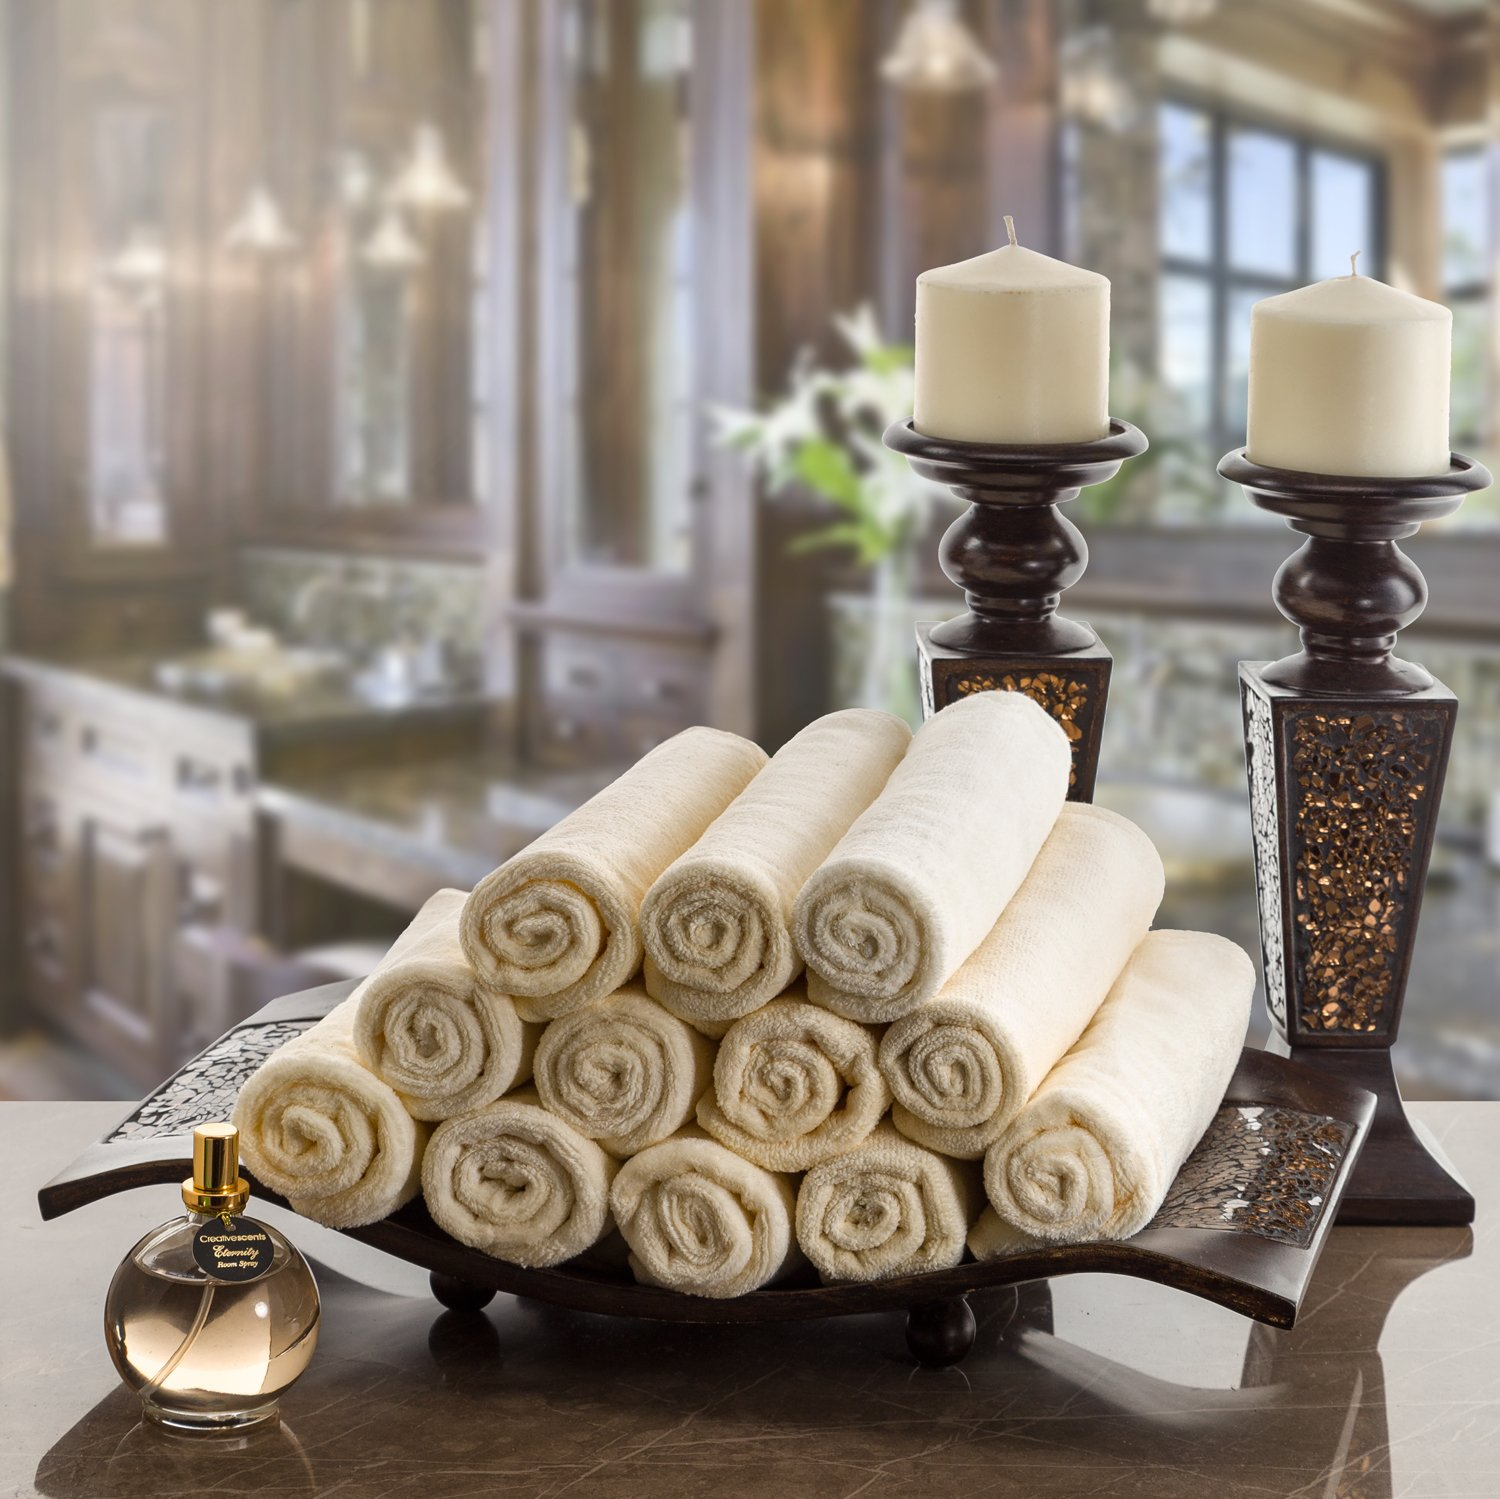 Monogrammed Gifts, Fingertip Towels, 11 x 18 Inches - Set of 4- Decorative Golden Brown Embroidered Towel - Extra Absorbent 100% Cotton- Personalized Gift- For Bathroom/Kitchen- Initial S (Ivory) by Creative Scents (Image #3)